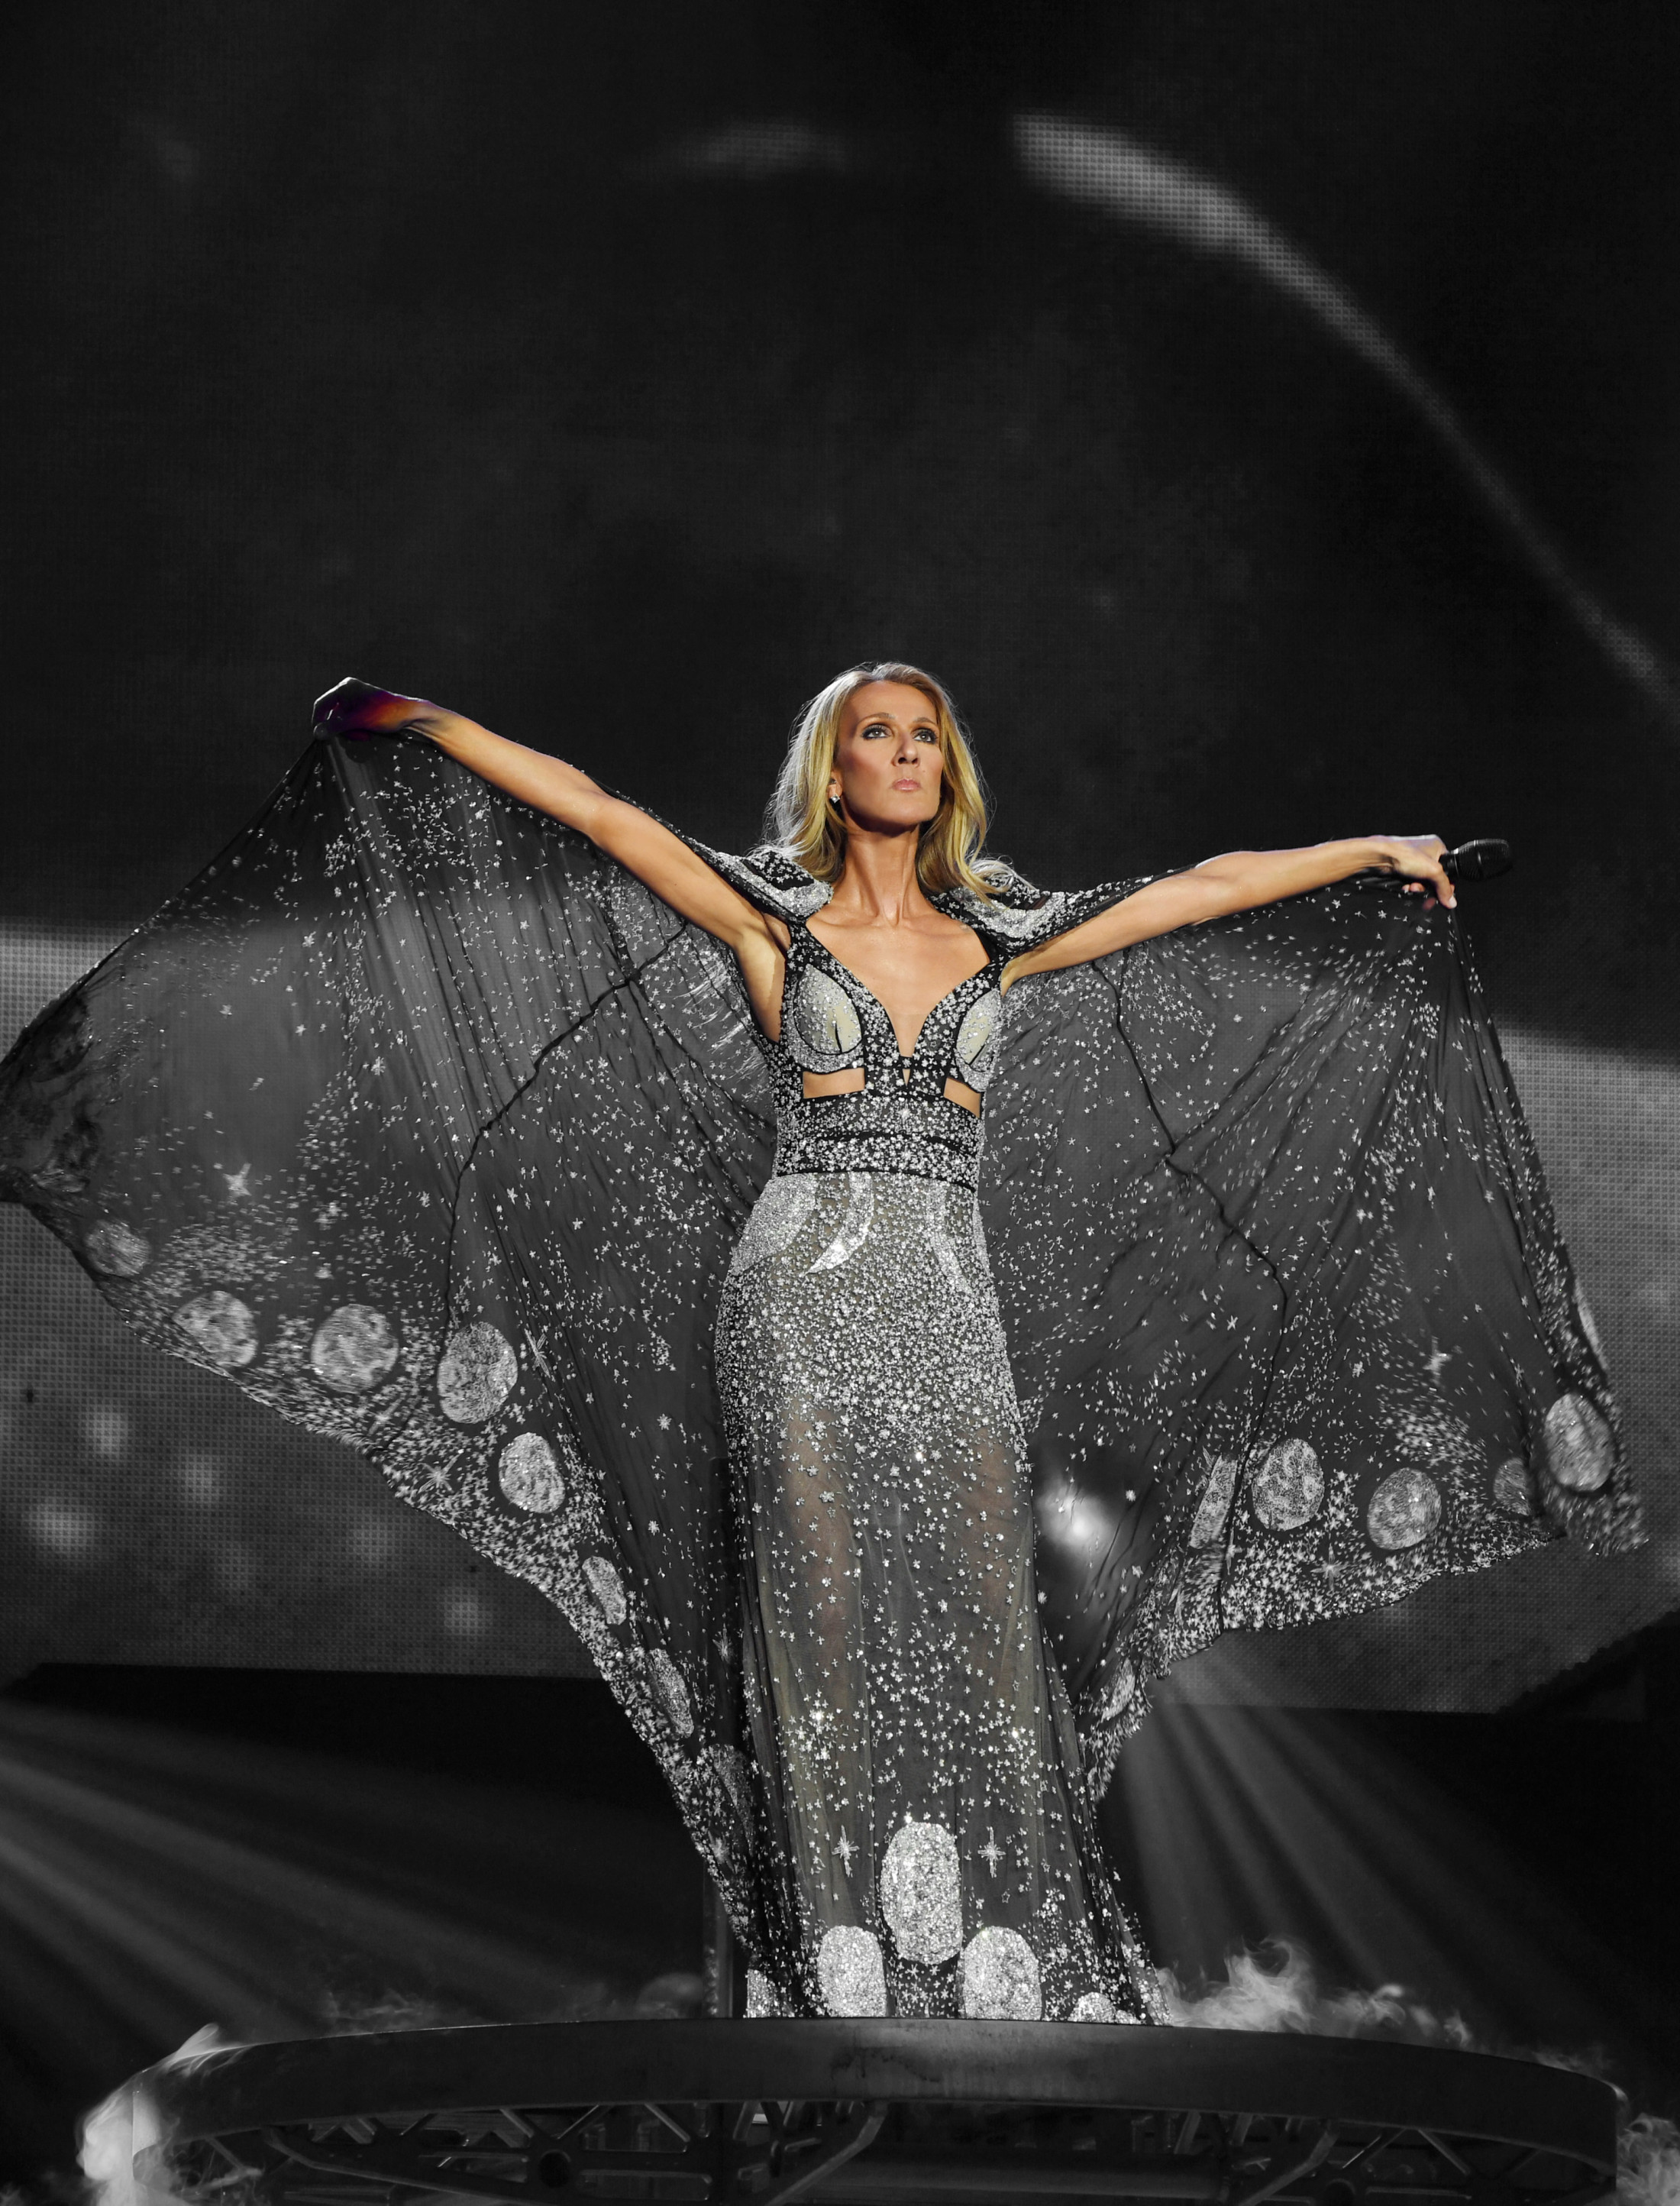 02_celine-dion_photo_denise-truscellojpg_1575460594.jpg